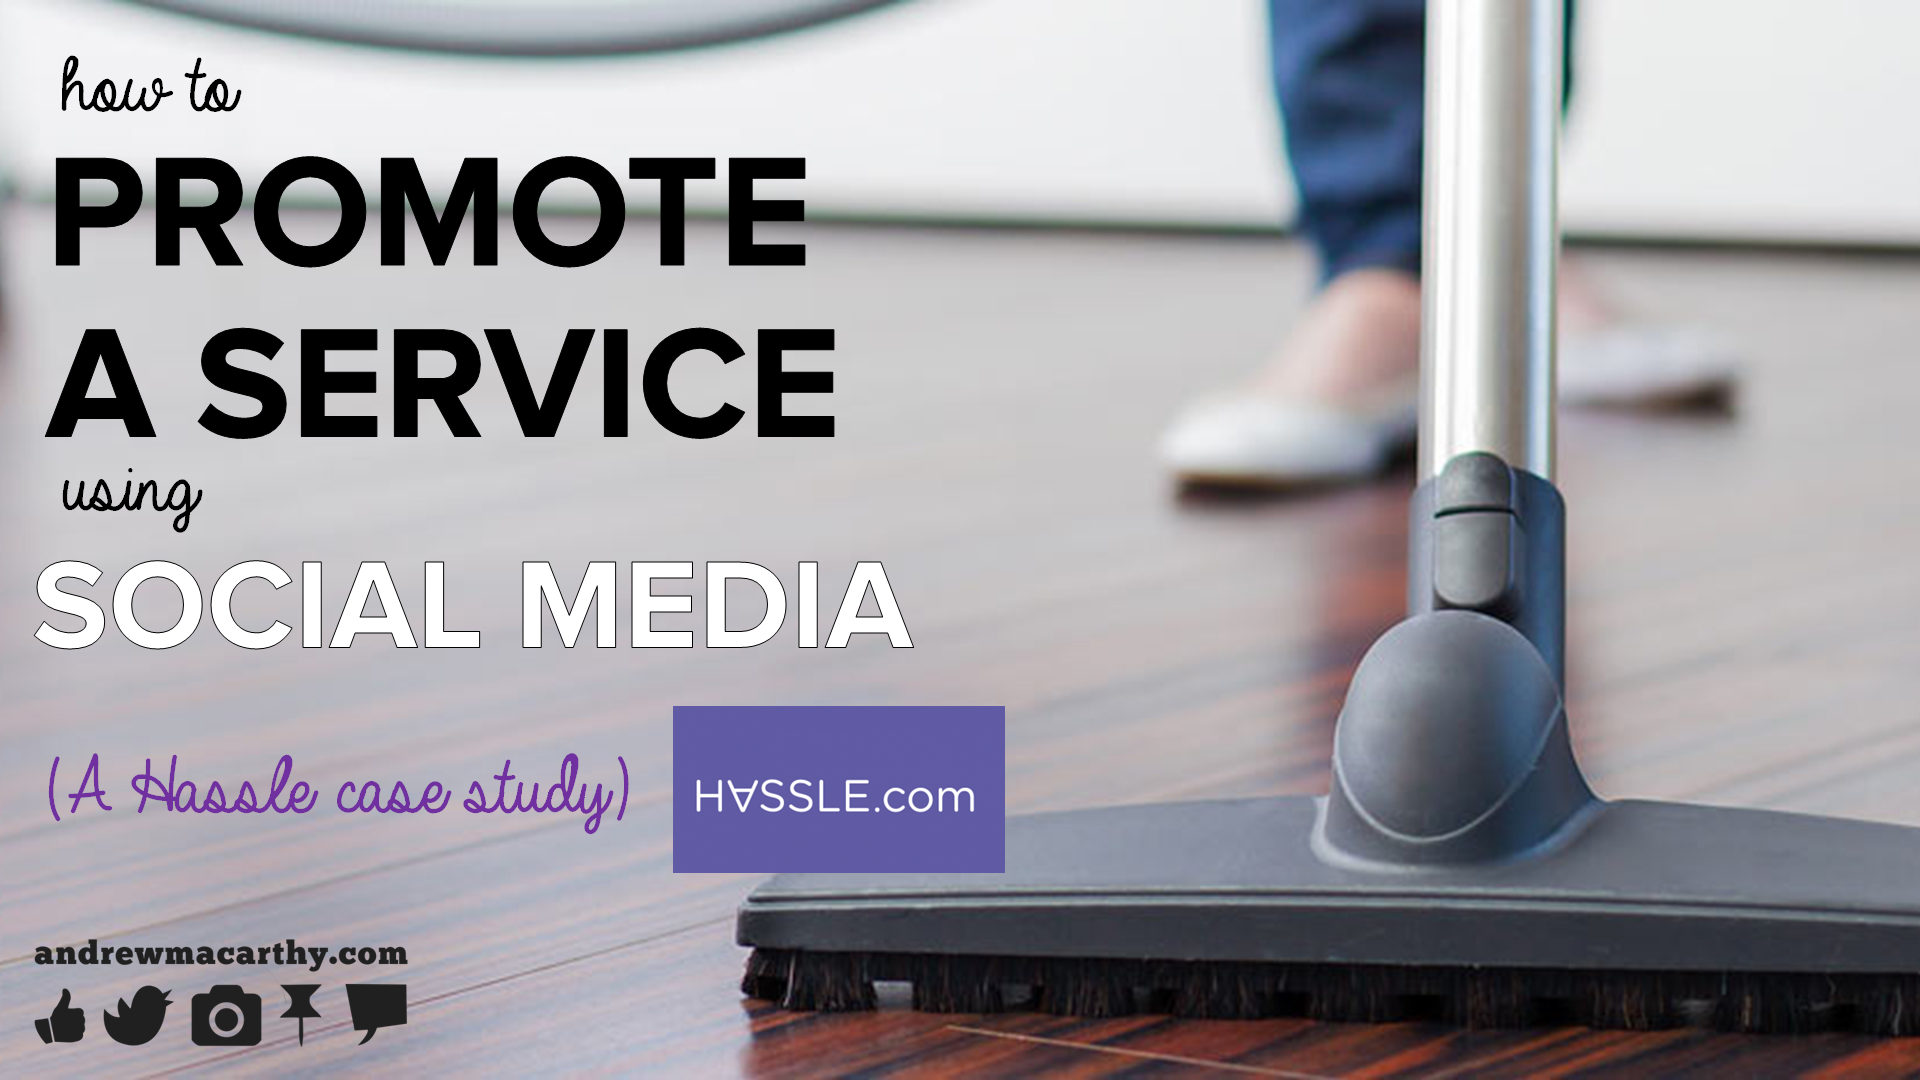 How to Promote A Service on Social Media (Hassle Cleaning Case Study)